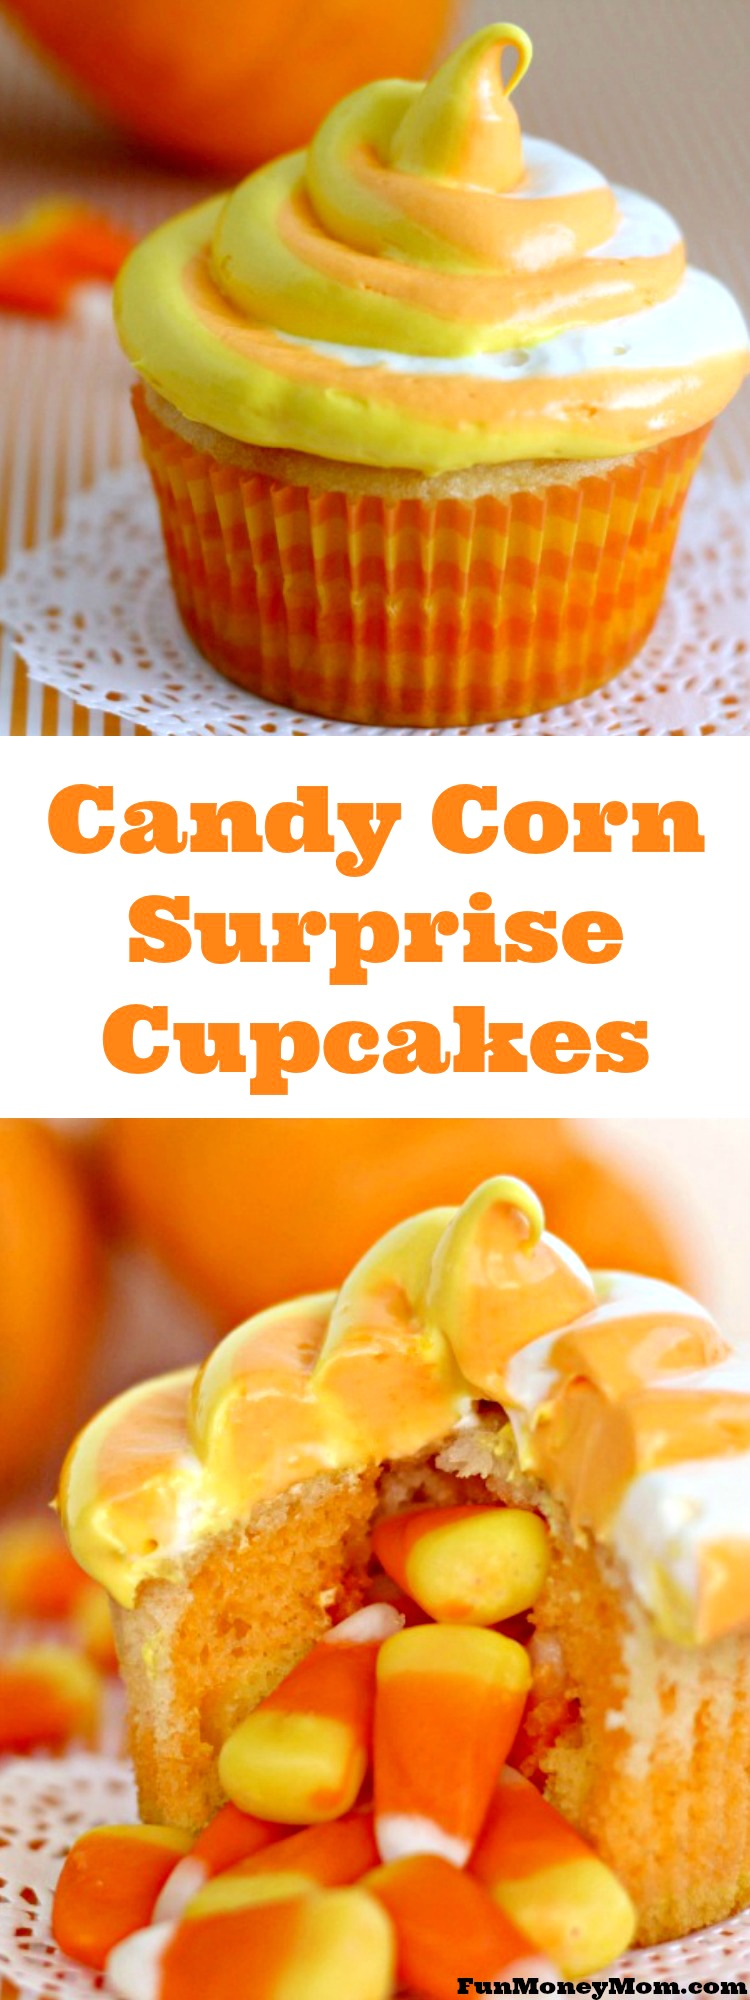 Want a delicious Halloween treat? These Candy Corn Surprise Cupcakes are the perfect dessert for your next Halloween party!